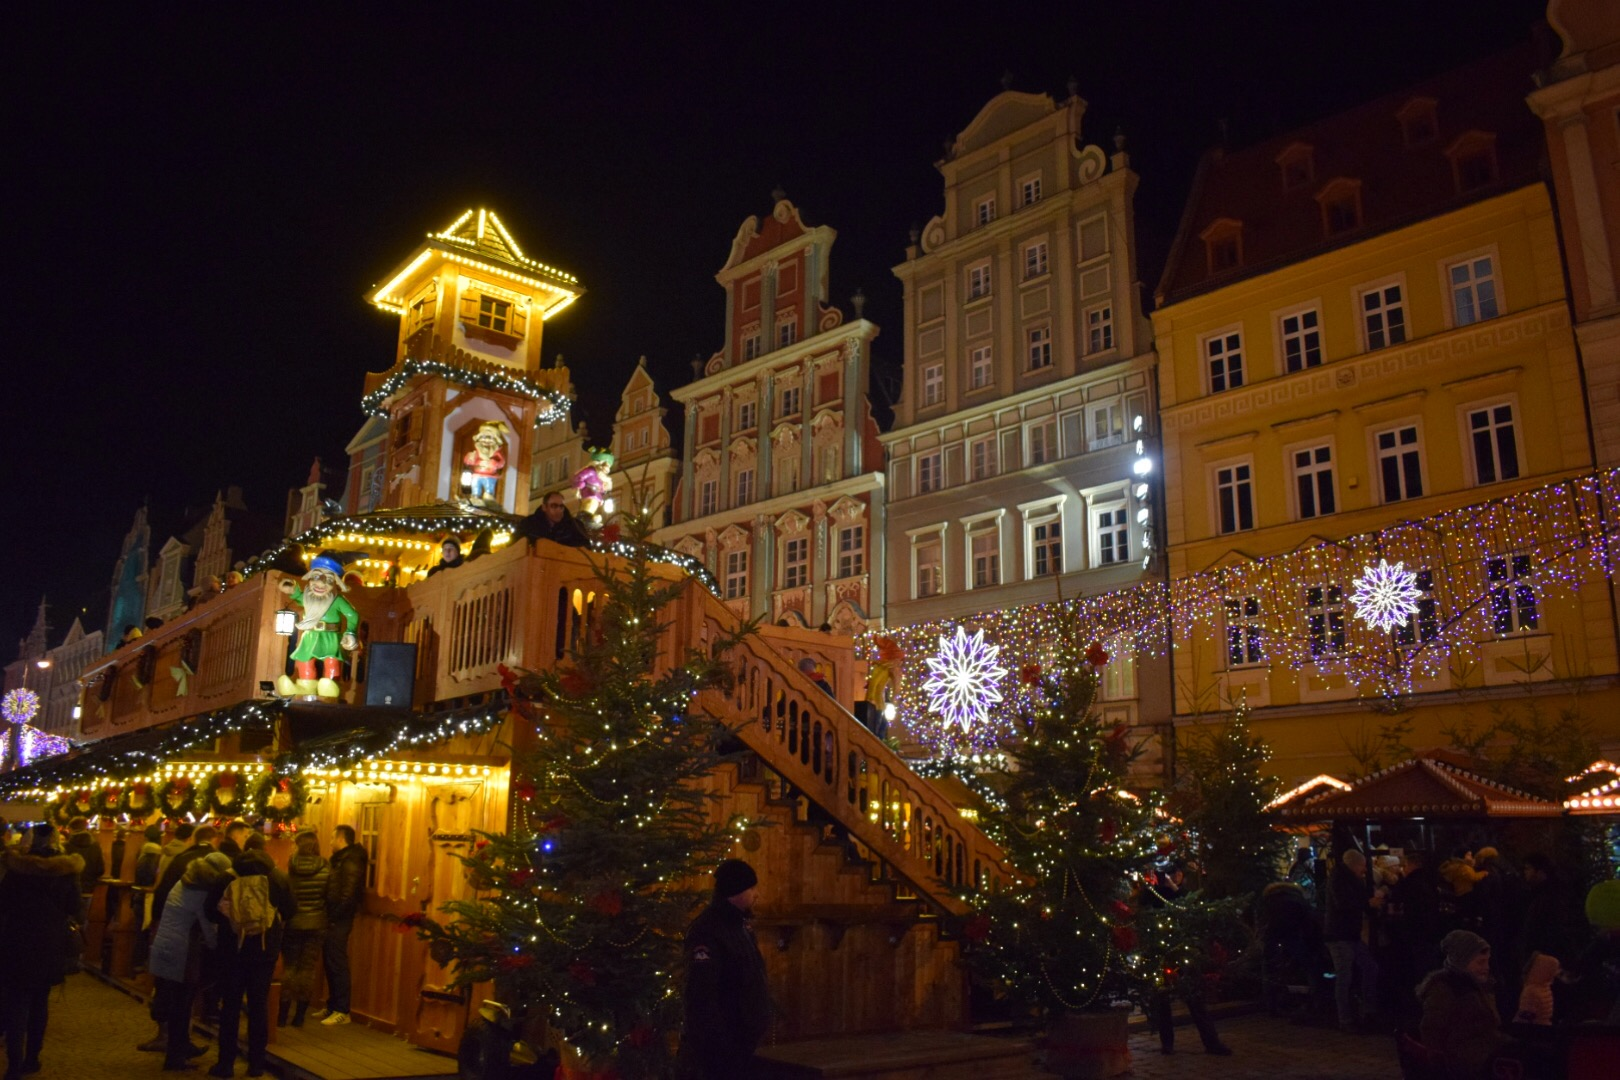 Market Square annually hosts one of Europe's finest Christmas markets.